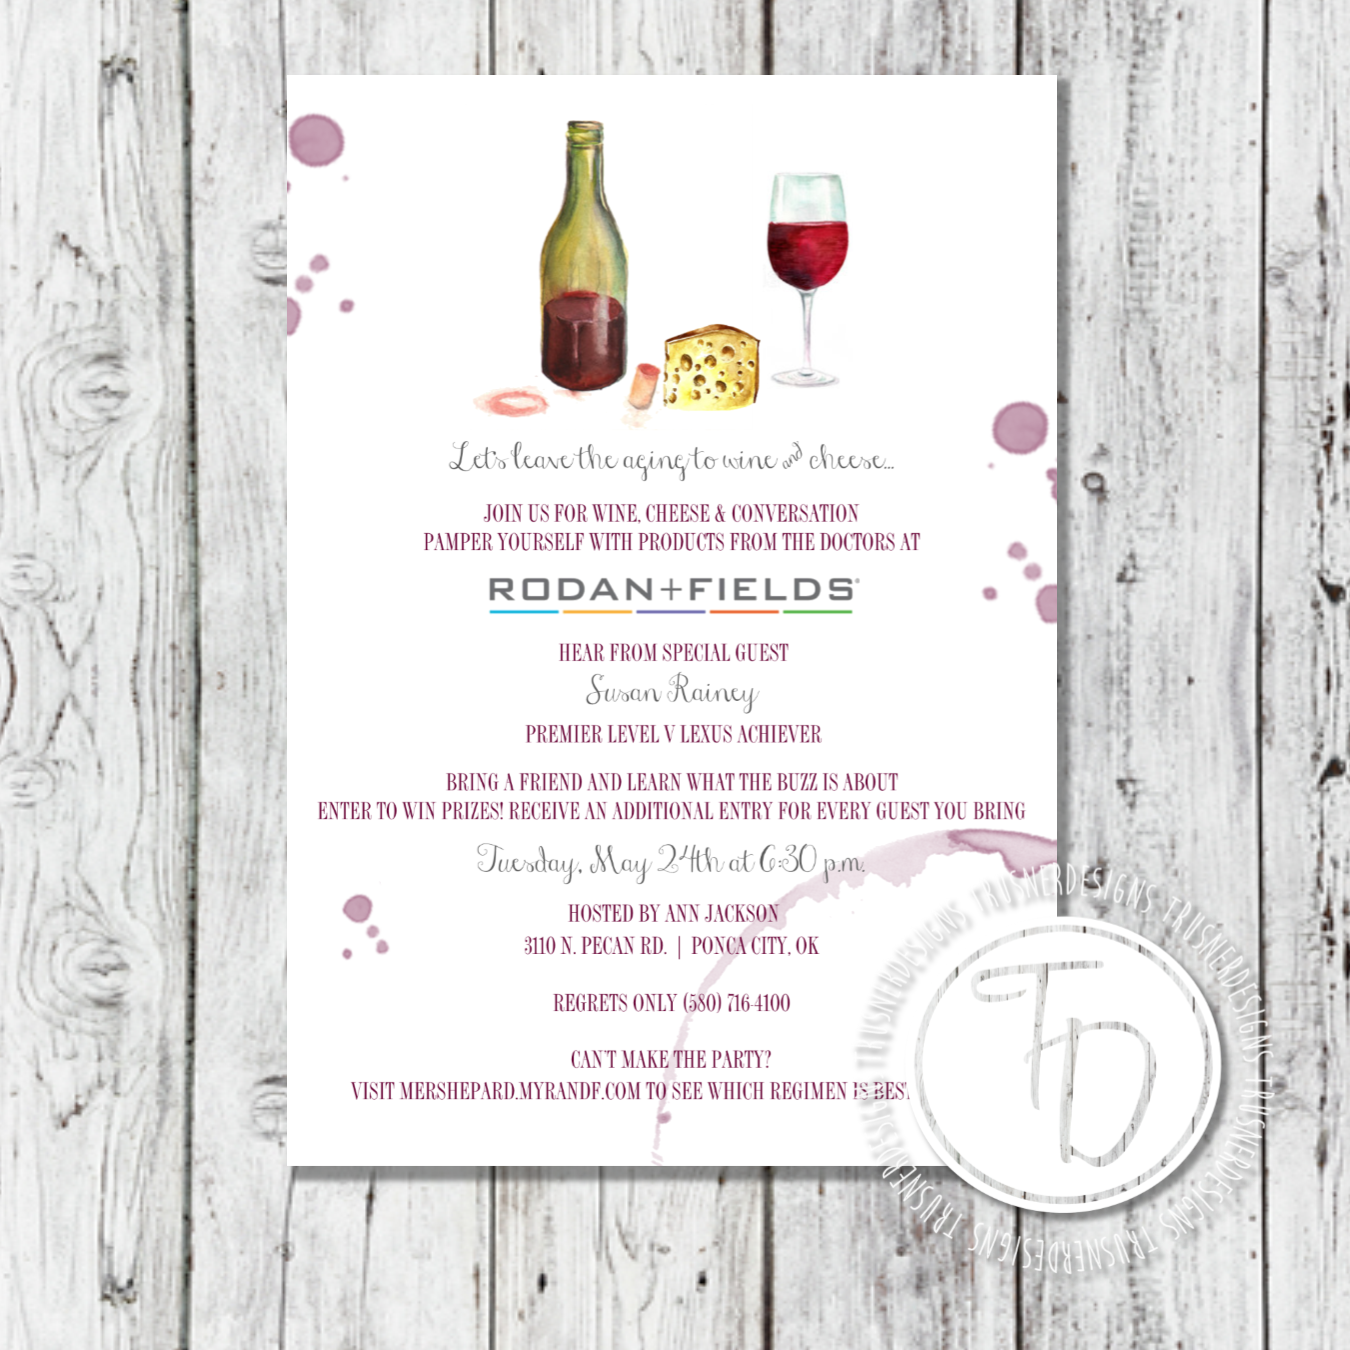 Wine and cheese R+F party invitation by Trusner Designs